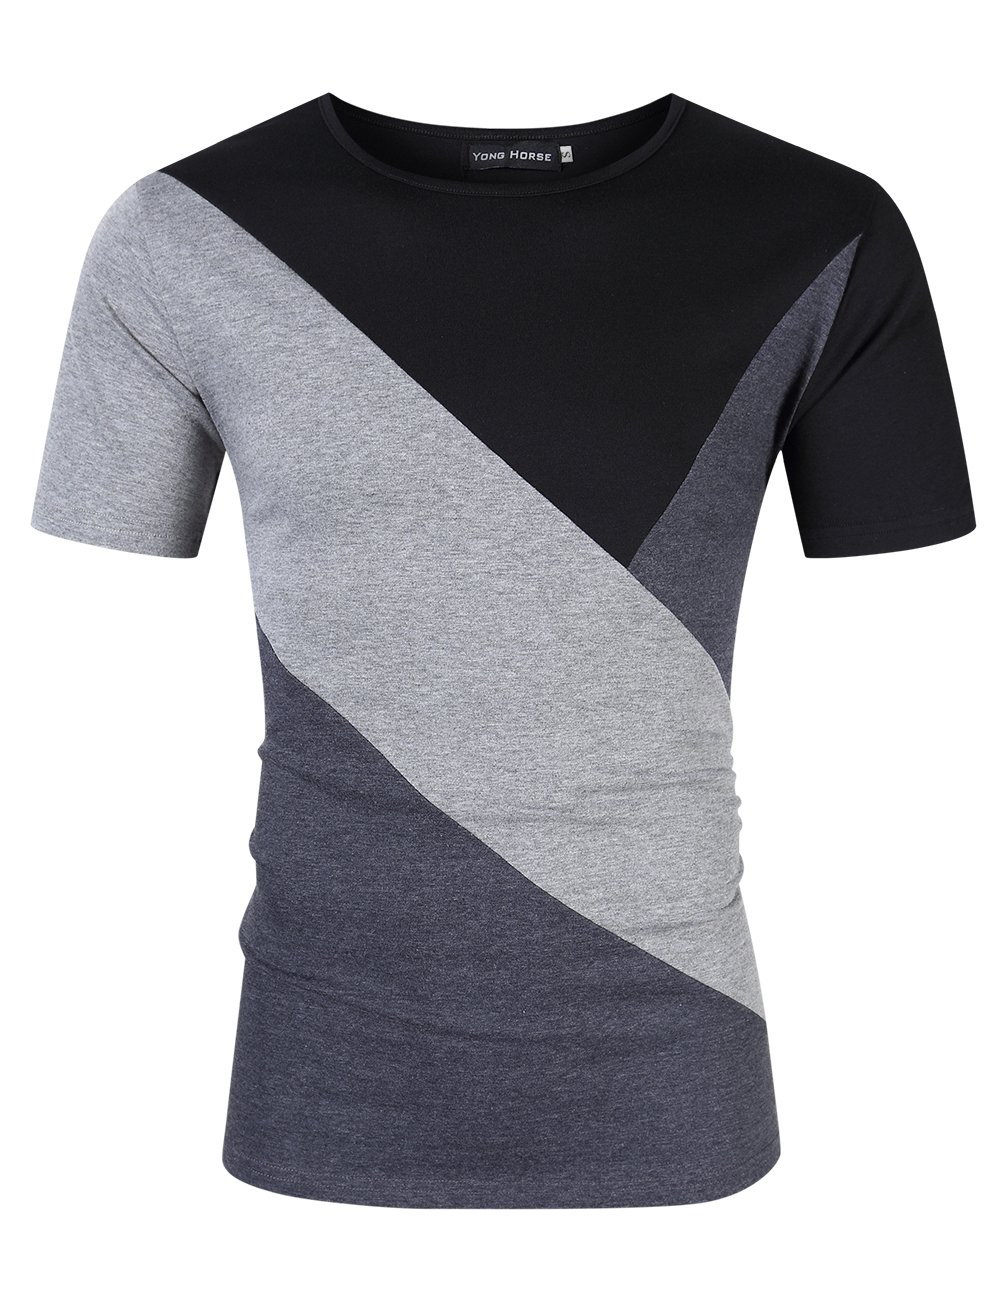 Yong Horse Mens Summer Active Wear Tops Contrast Color Stitch Crew Neck Elastic Slim Fit Short Sleeve T Shirt (M Grey)